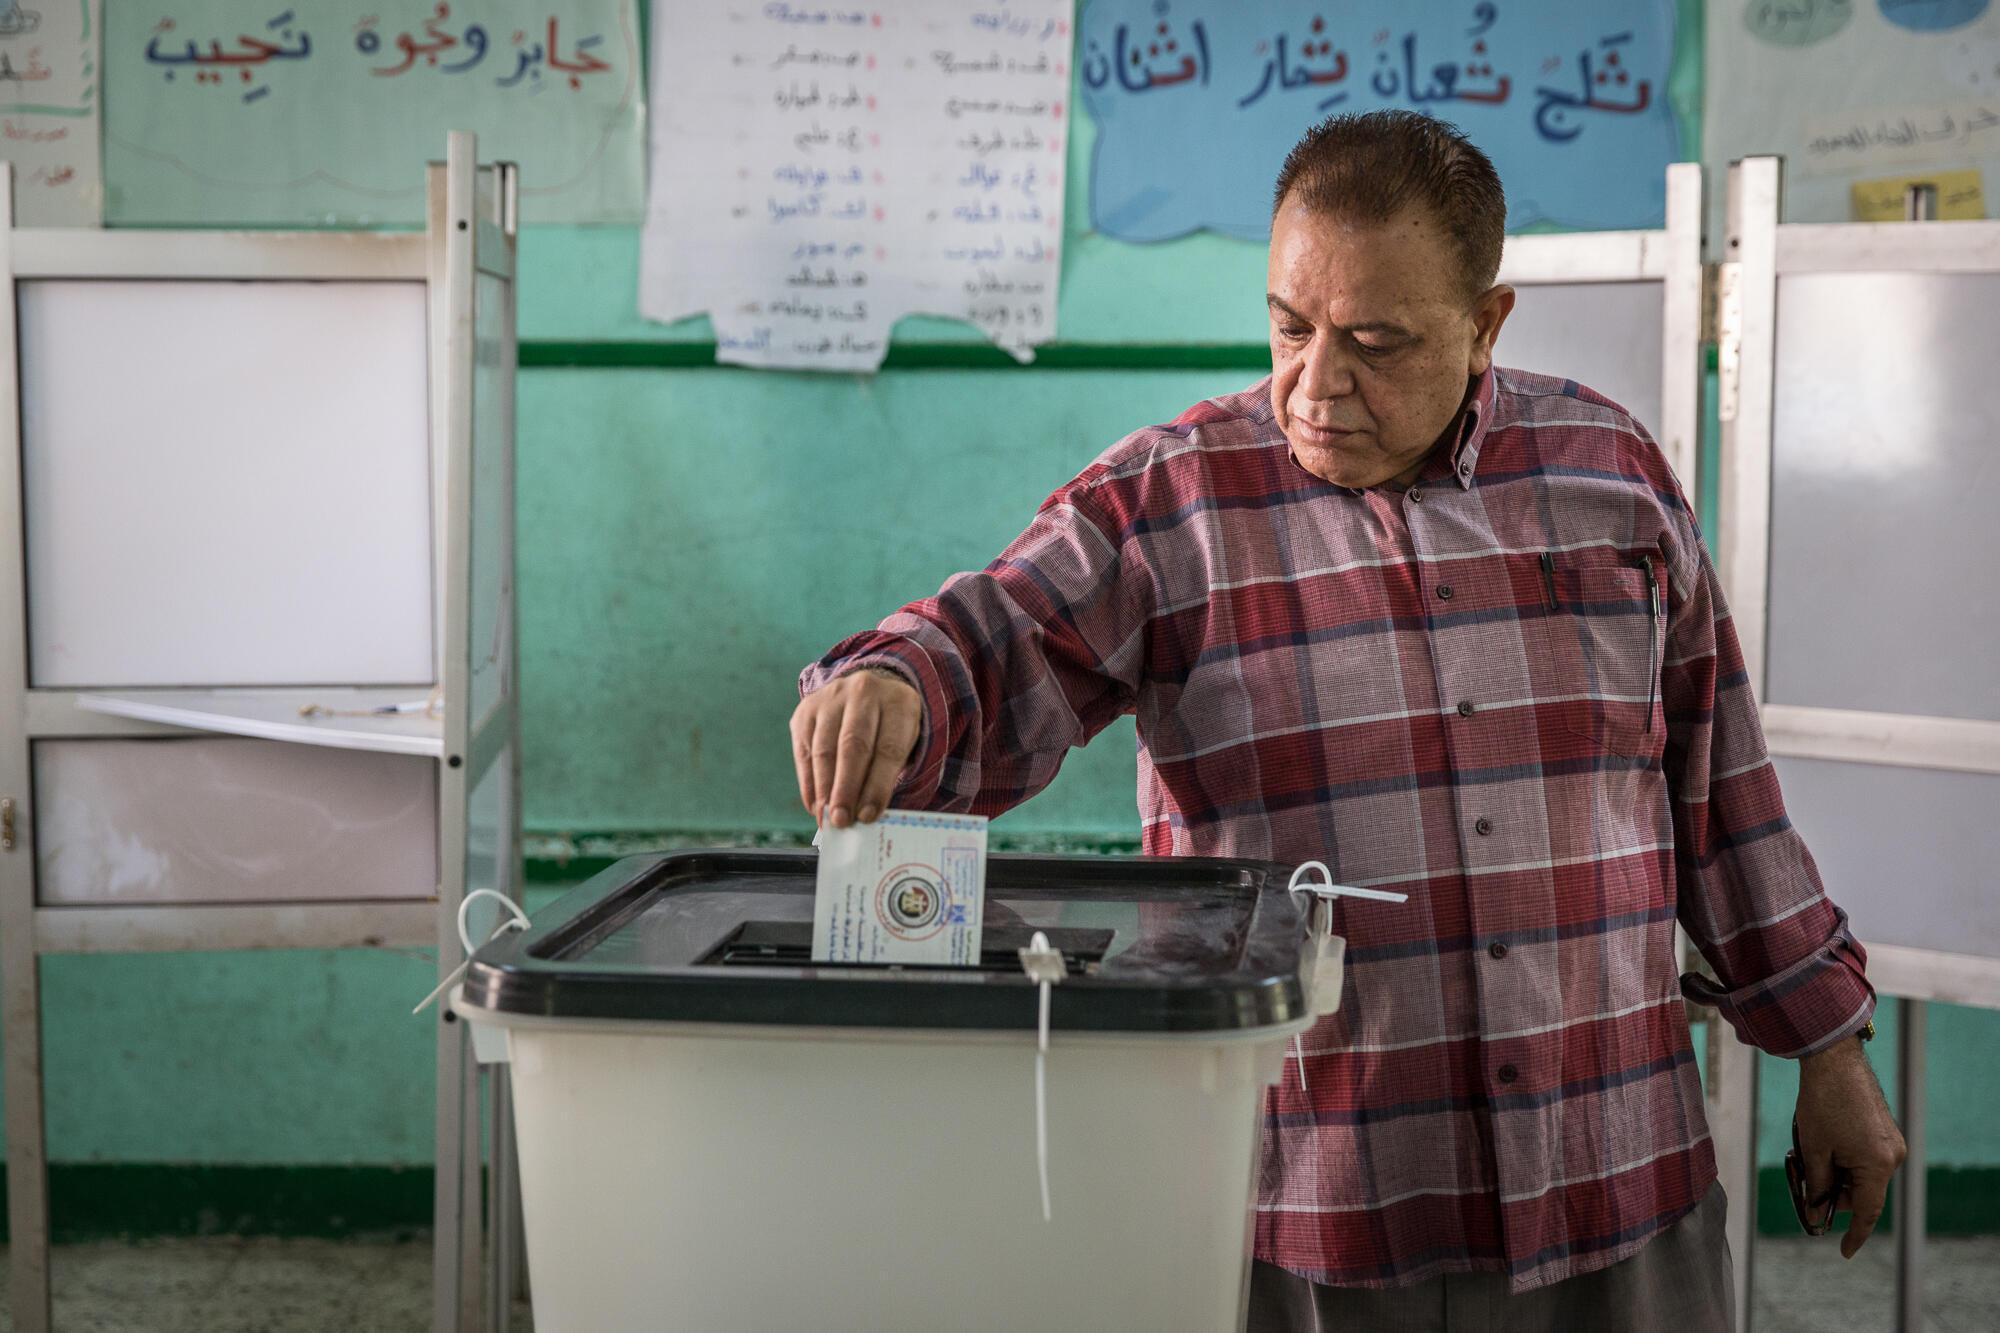 Polling station in Embaba, a low-income neighbourhood of Cairo, 26 March 2018.